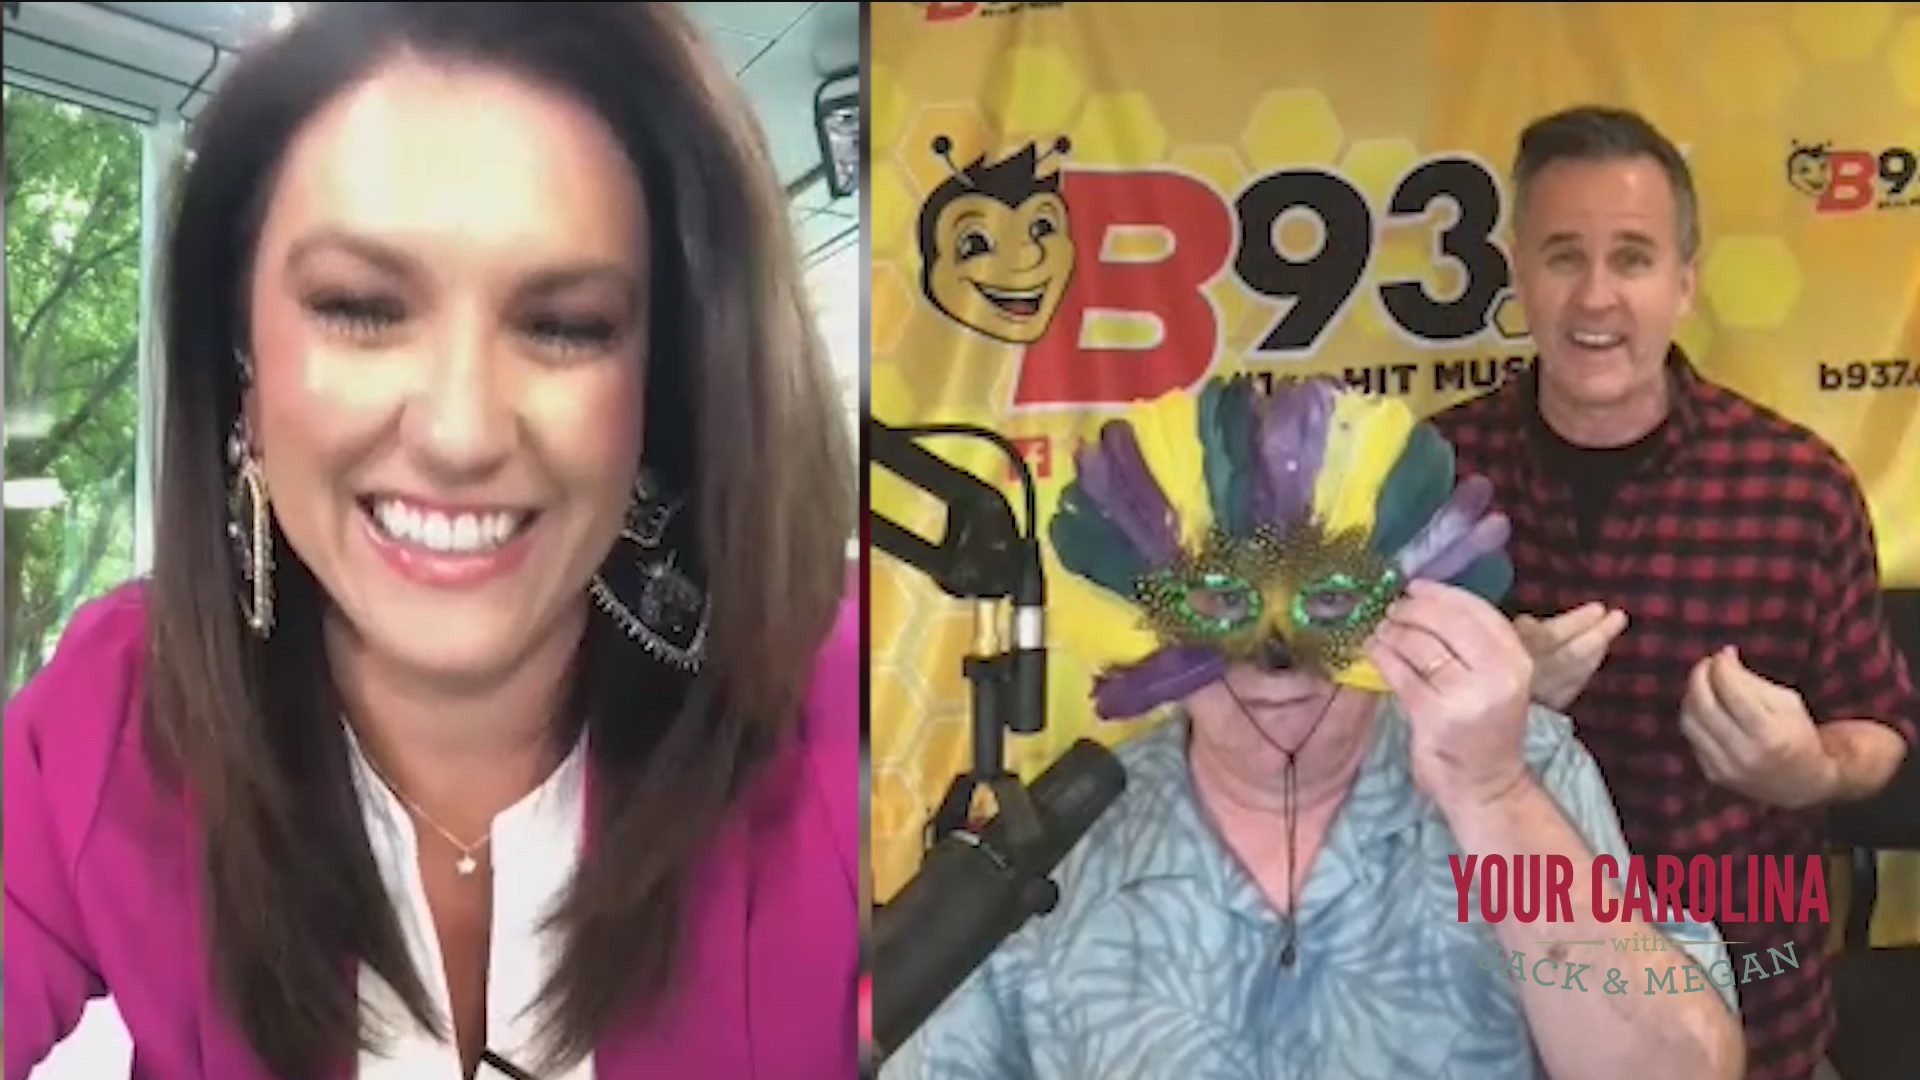 Megan Gets An Update From Hawk and Tom from B93.7